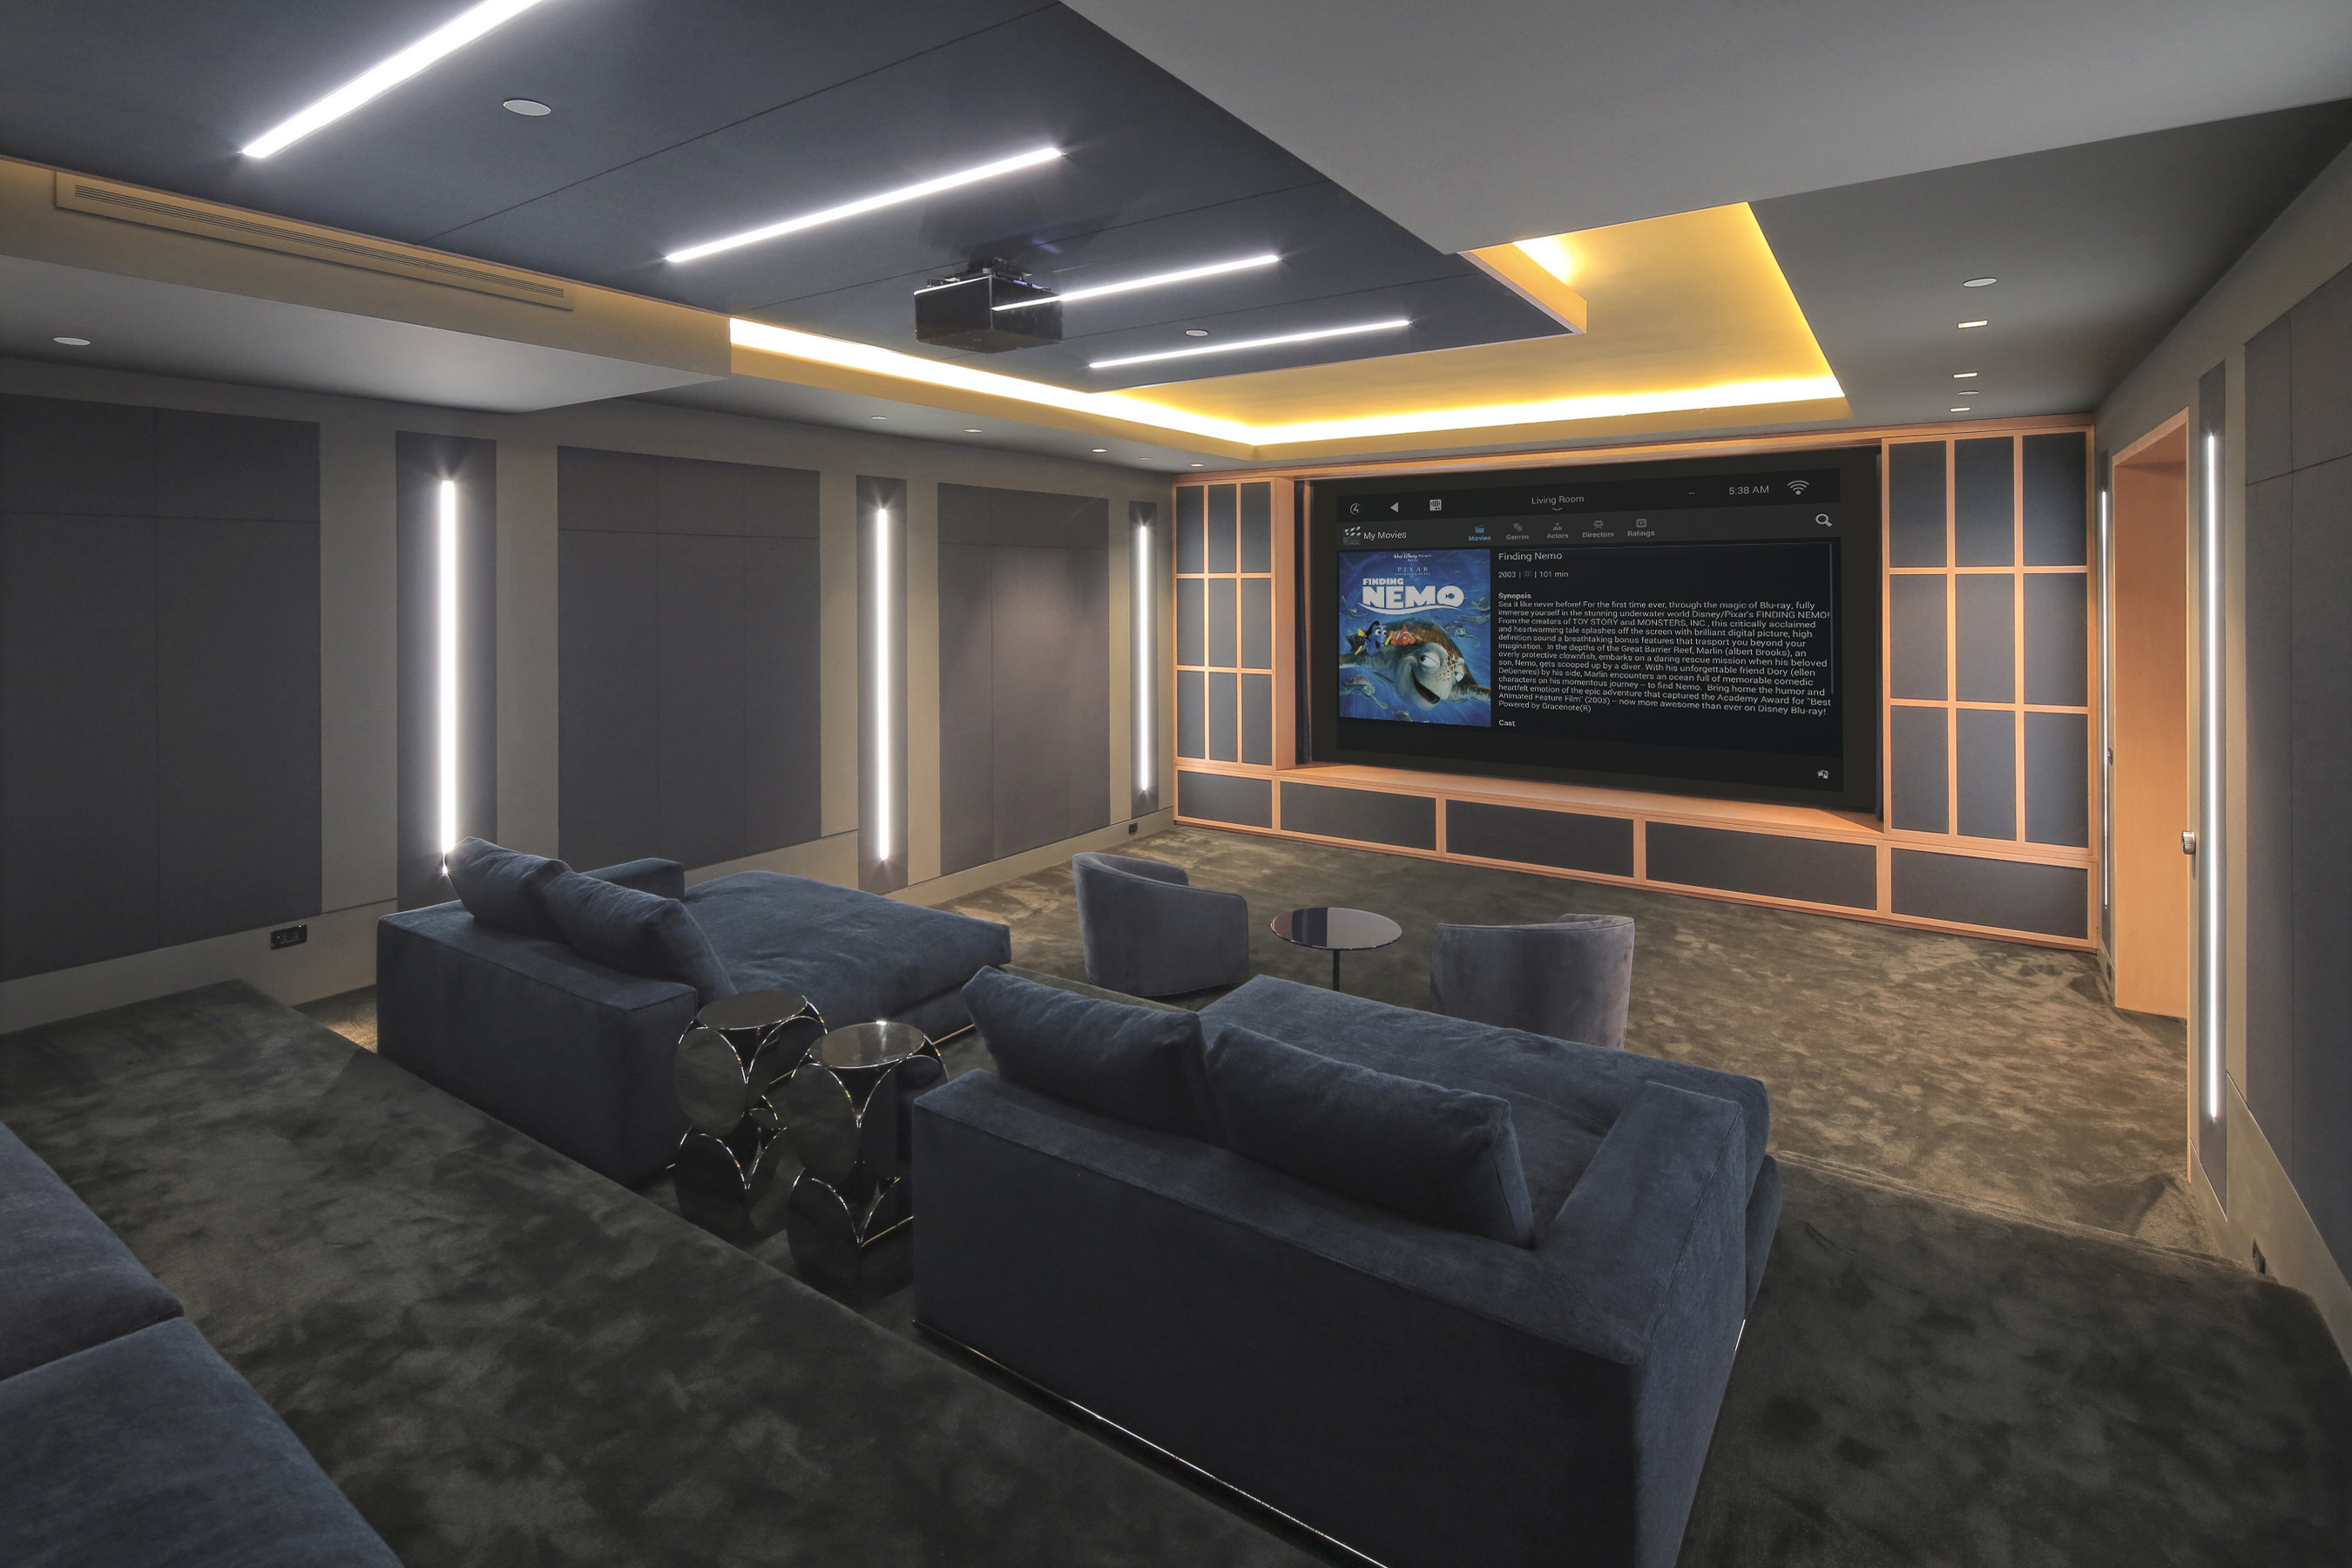 3 Things to Know Before Adding a Home Theater System